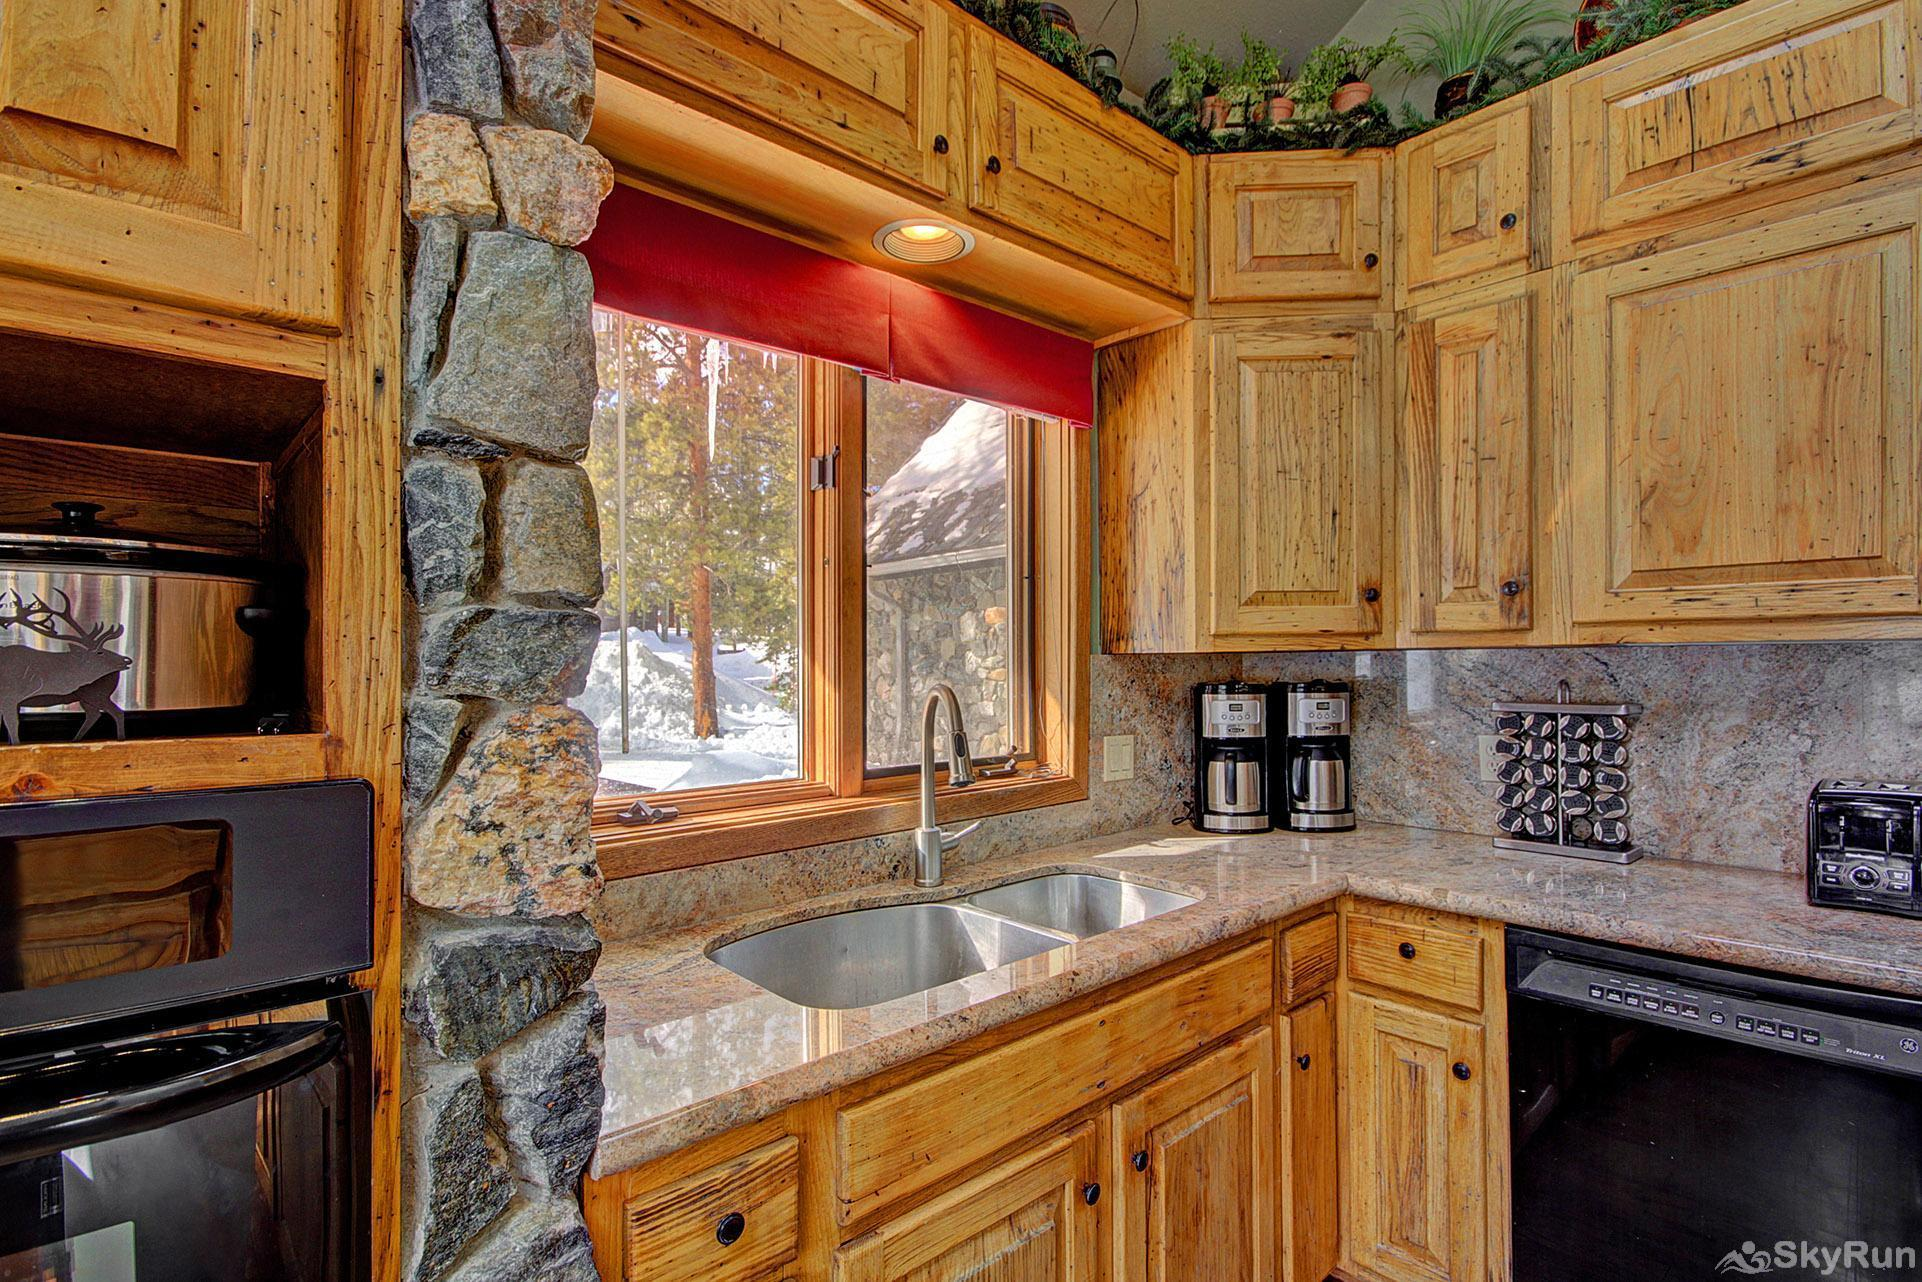 Gold King Lodge Kitchen Sink & Ovens